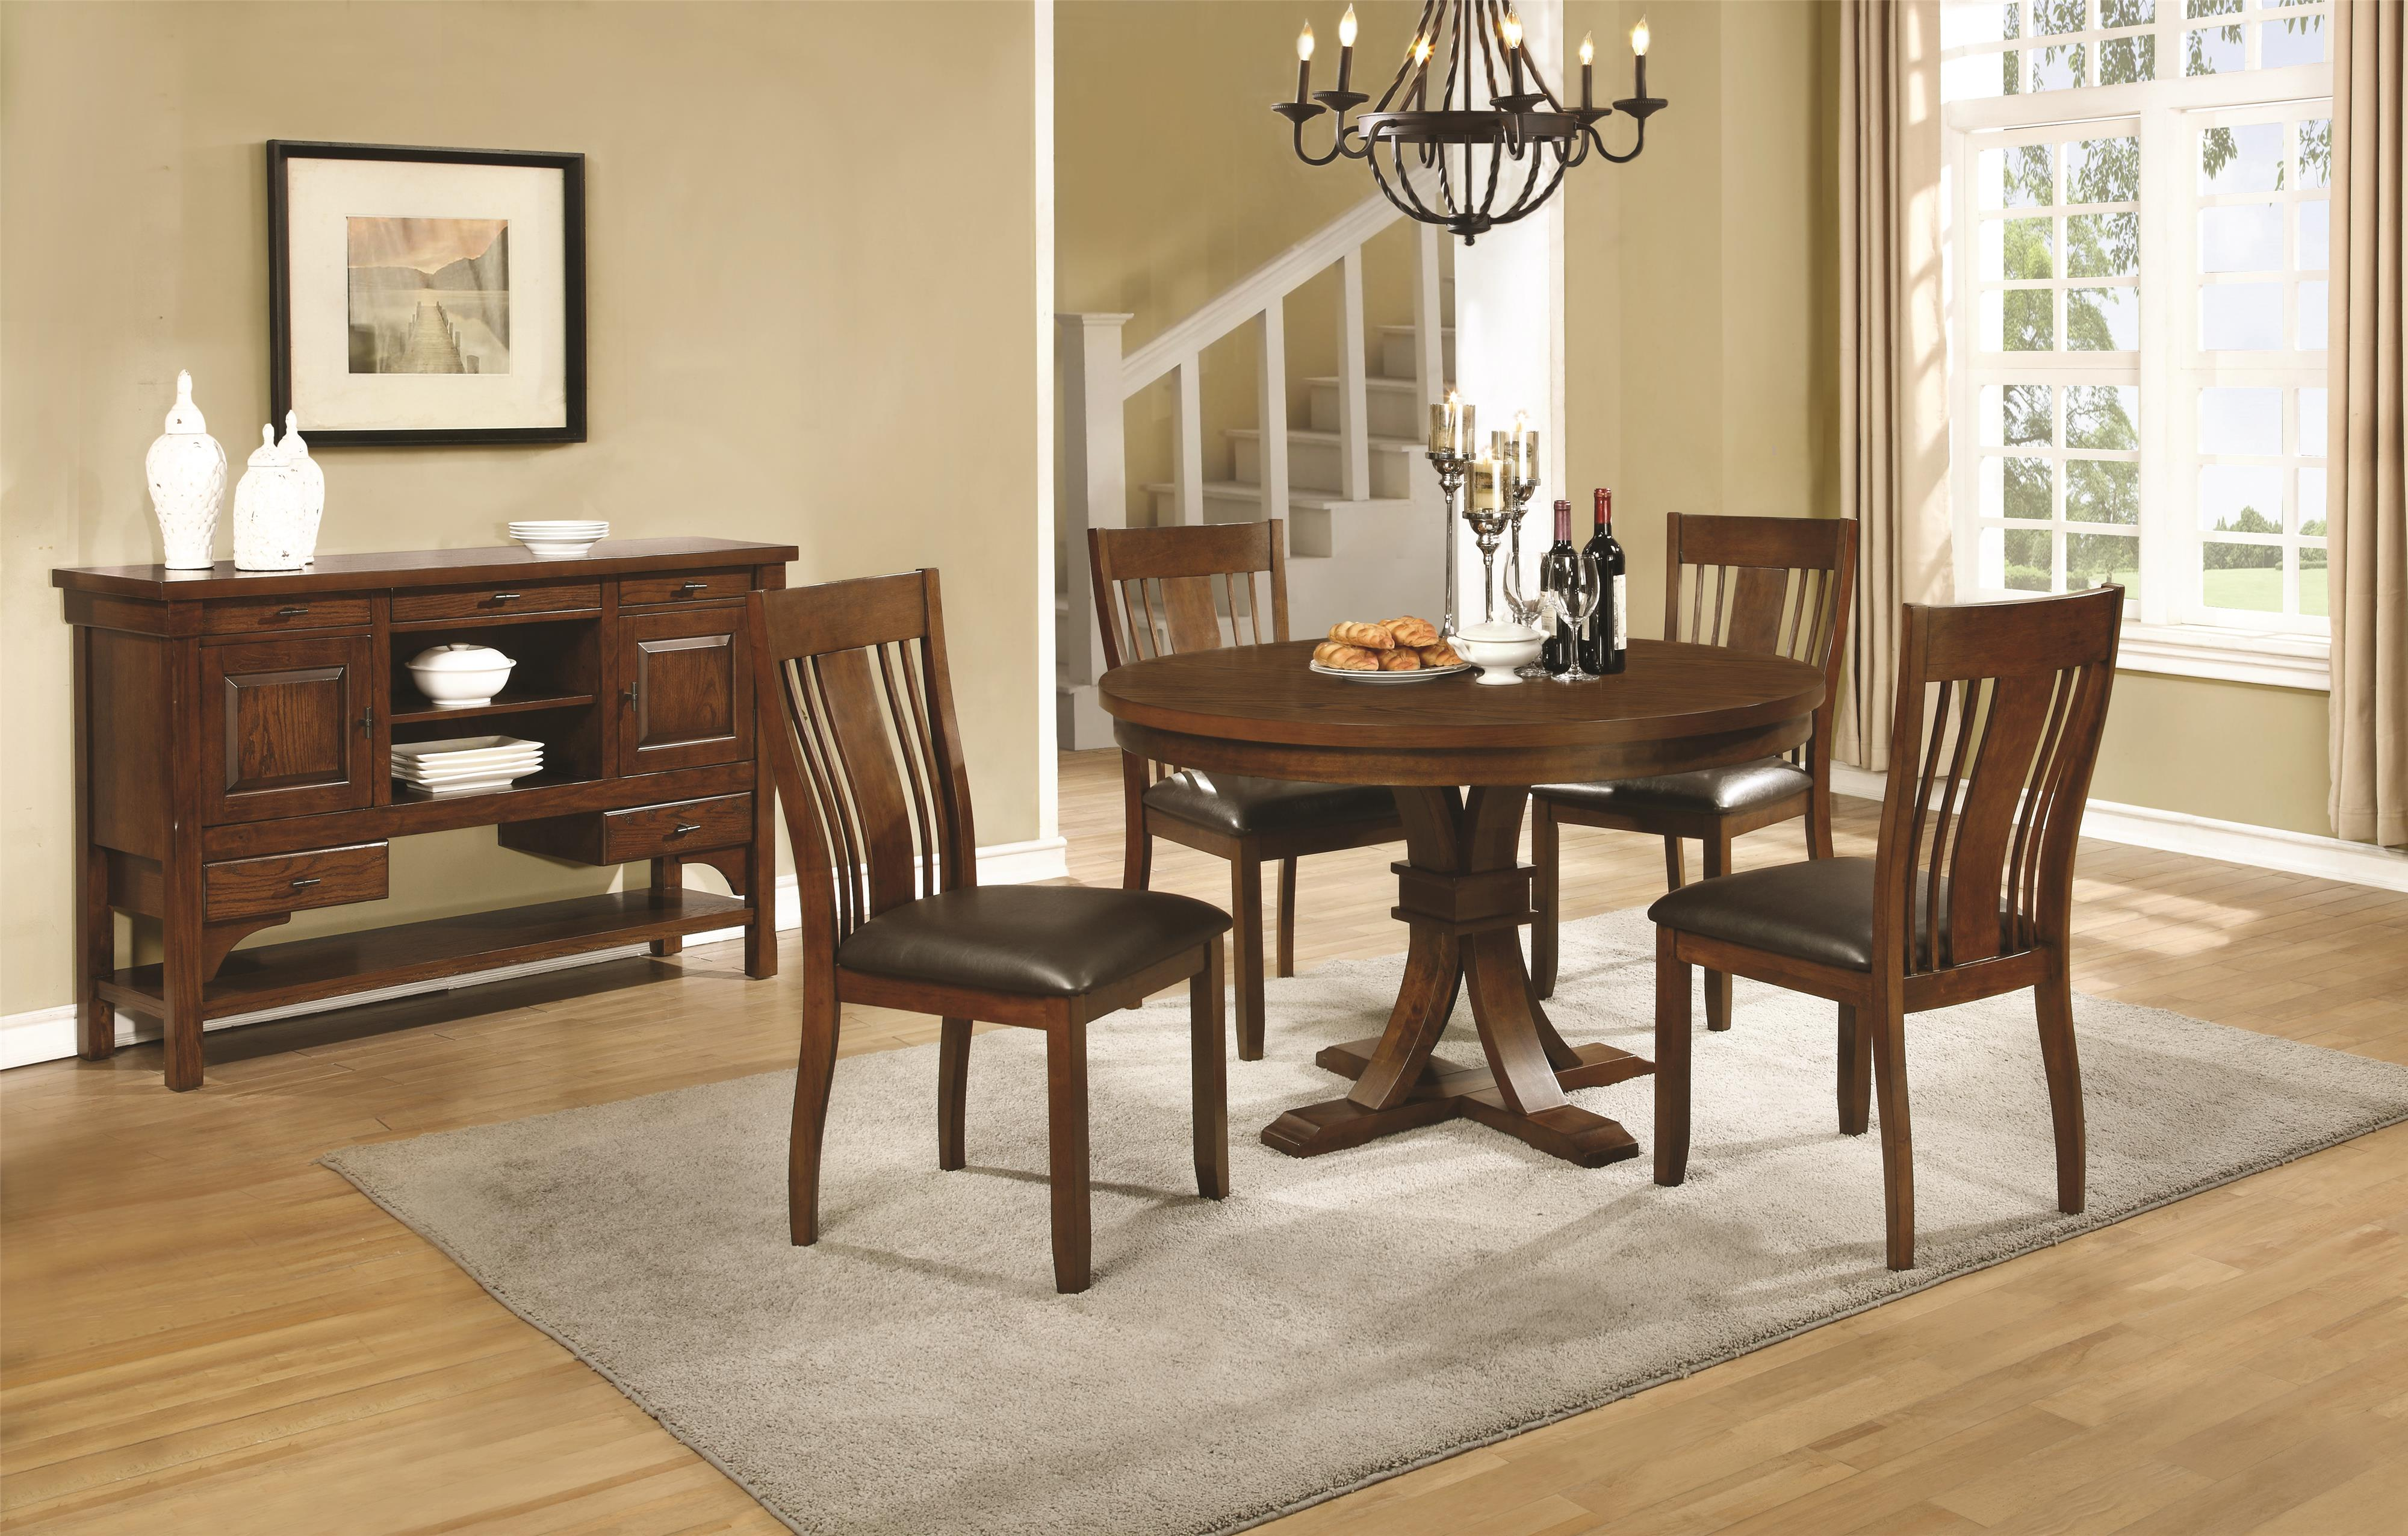 Coaster Abrams Casual Dining Room Group - Item Number: 10648 Dining Room Group 2